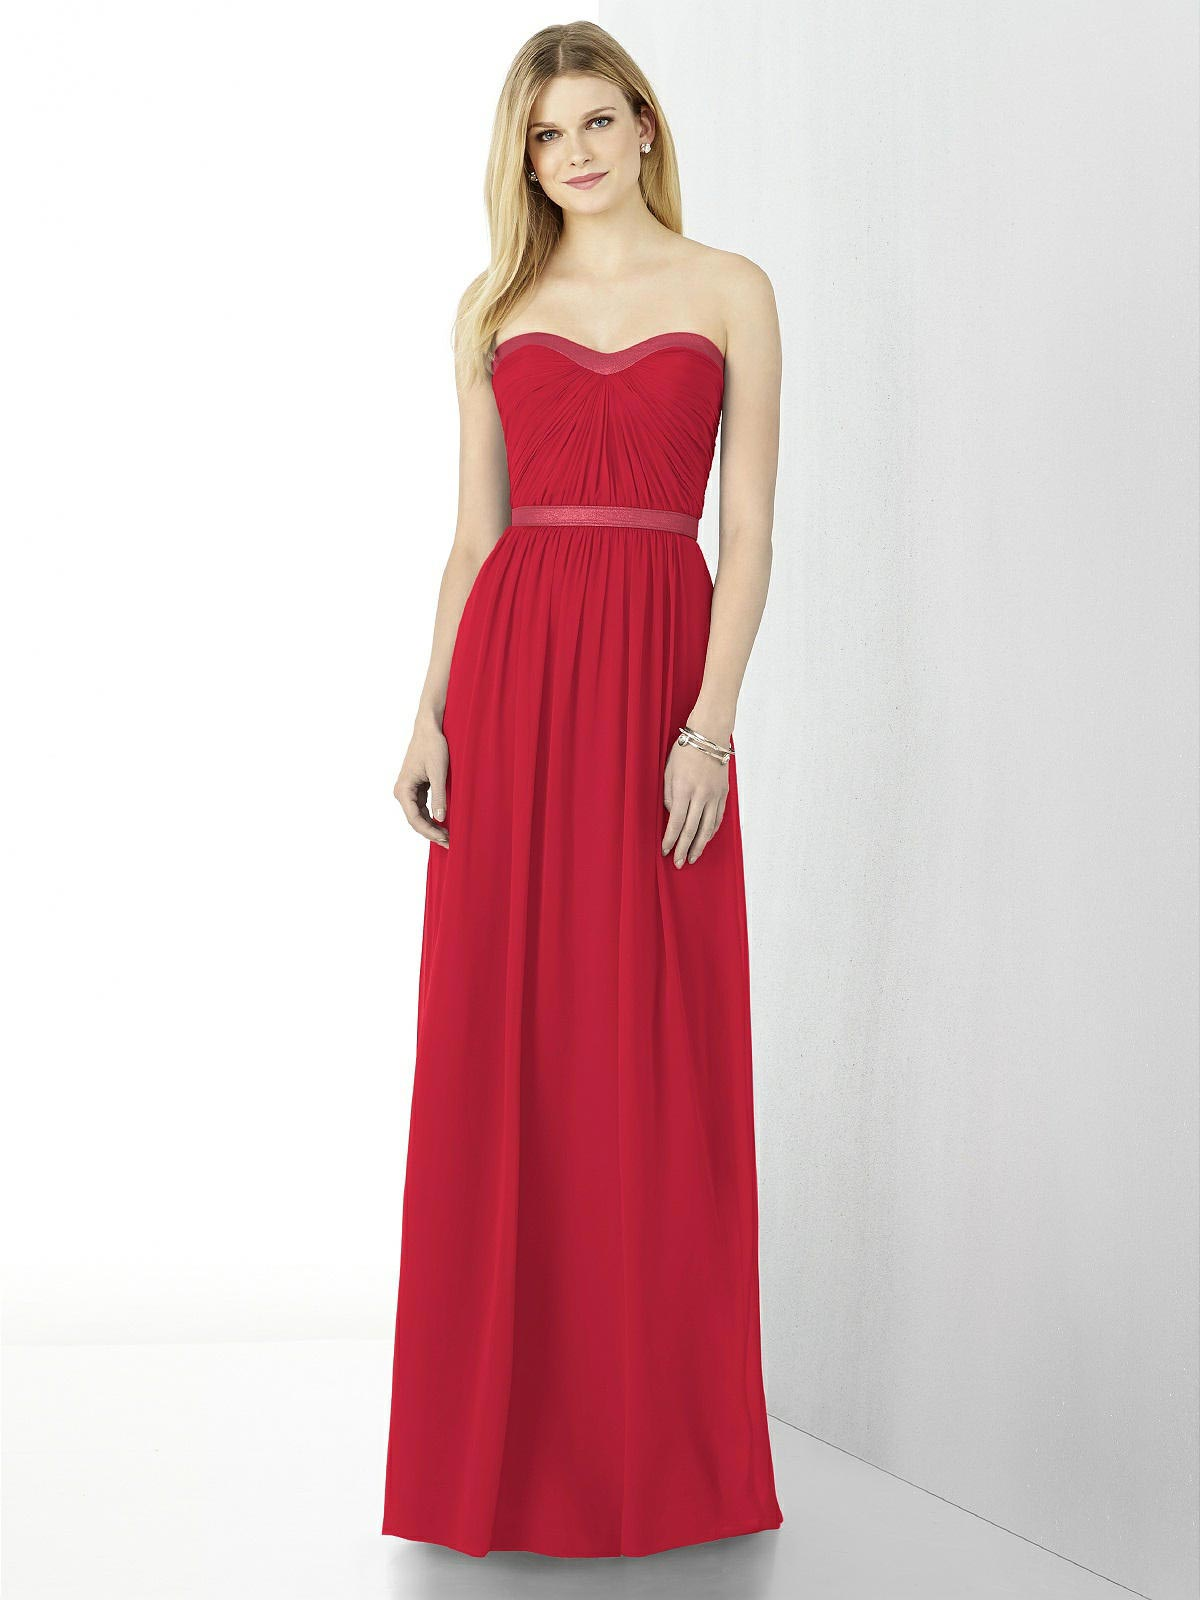 la belle bridal boutique bride in bright red gown